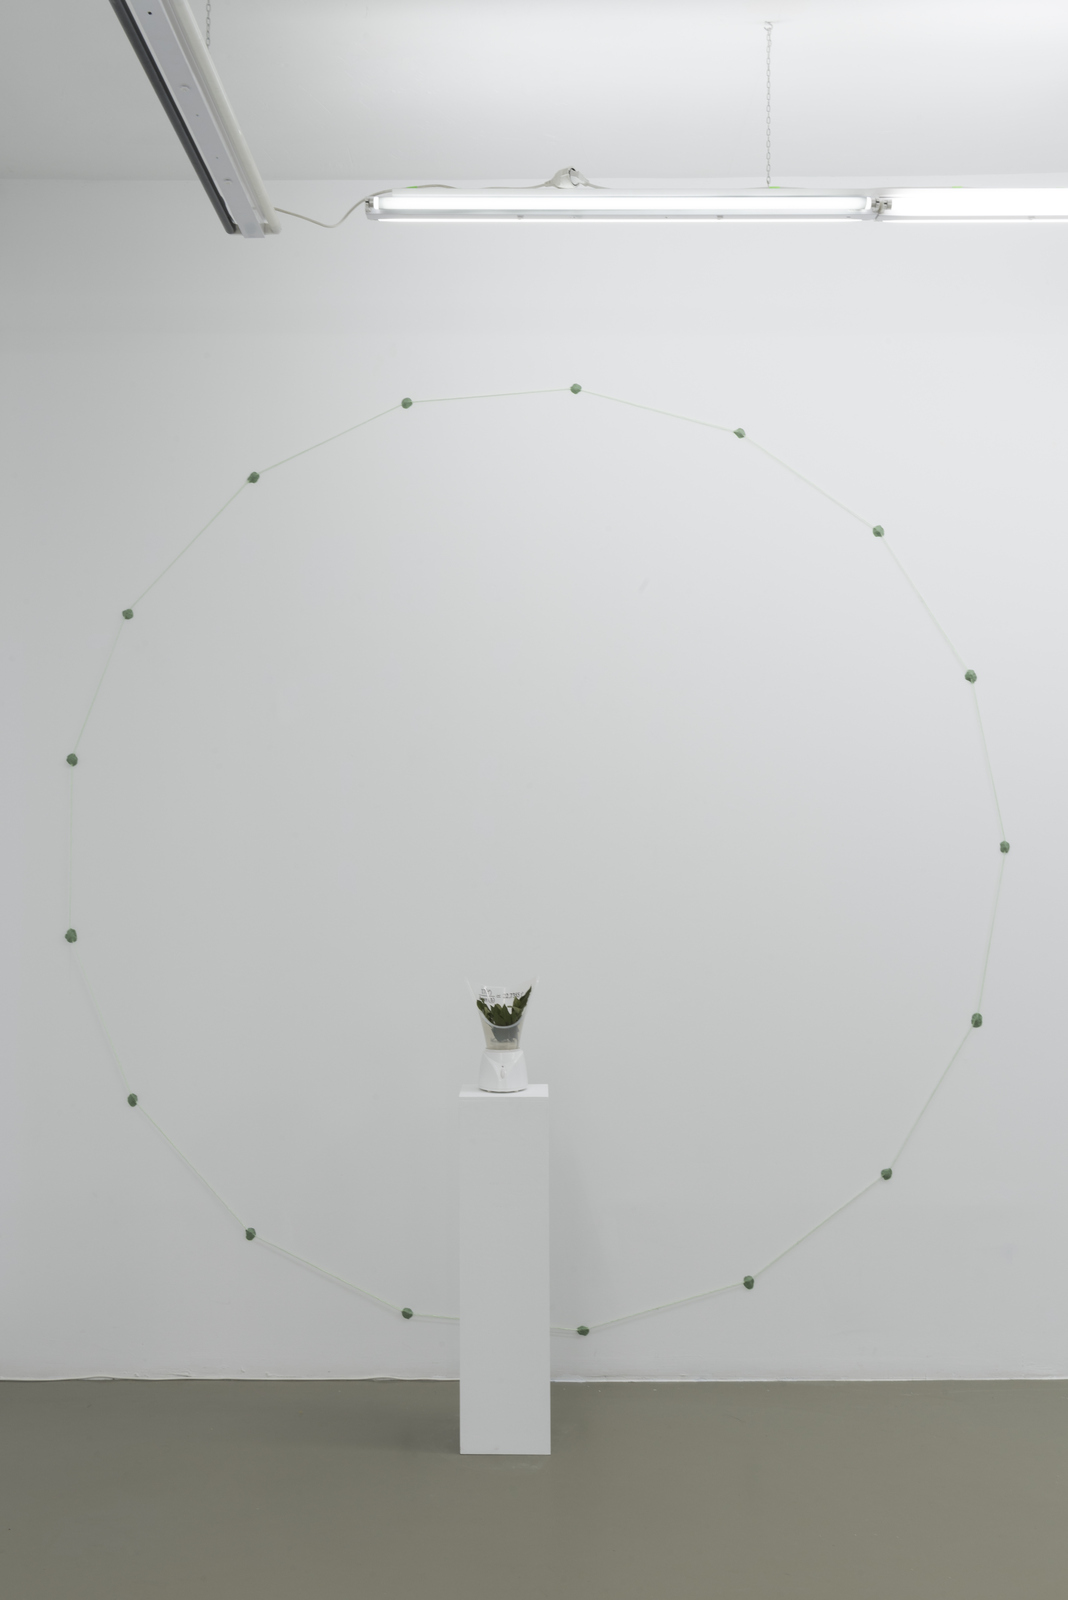 CS_Altar I_2016_Vaporizer, laurel, floss, bubble gum_300x300x50cm